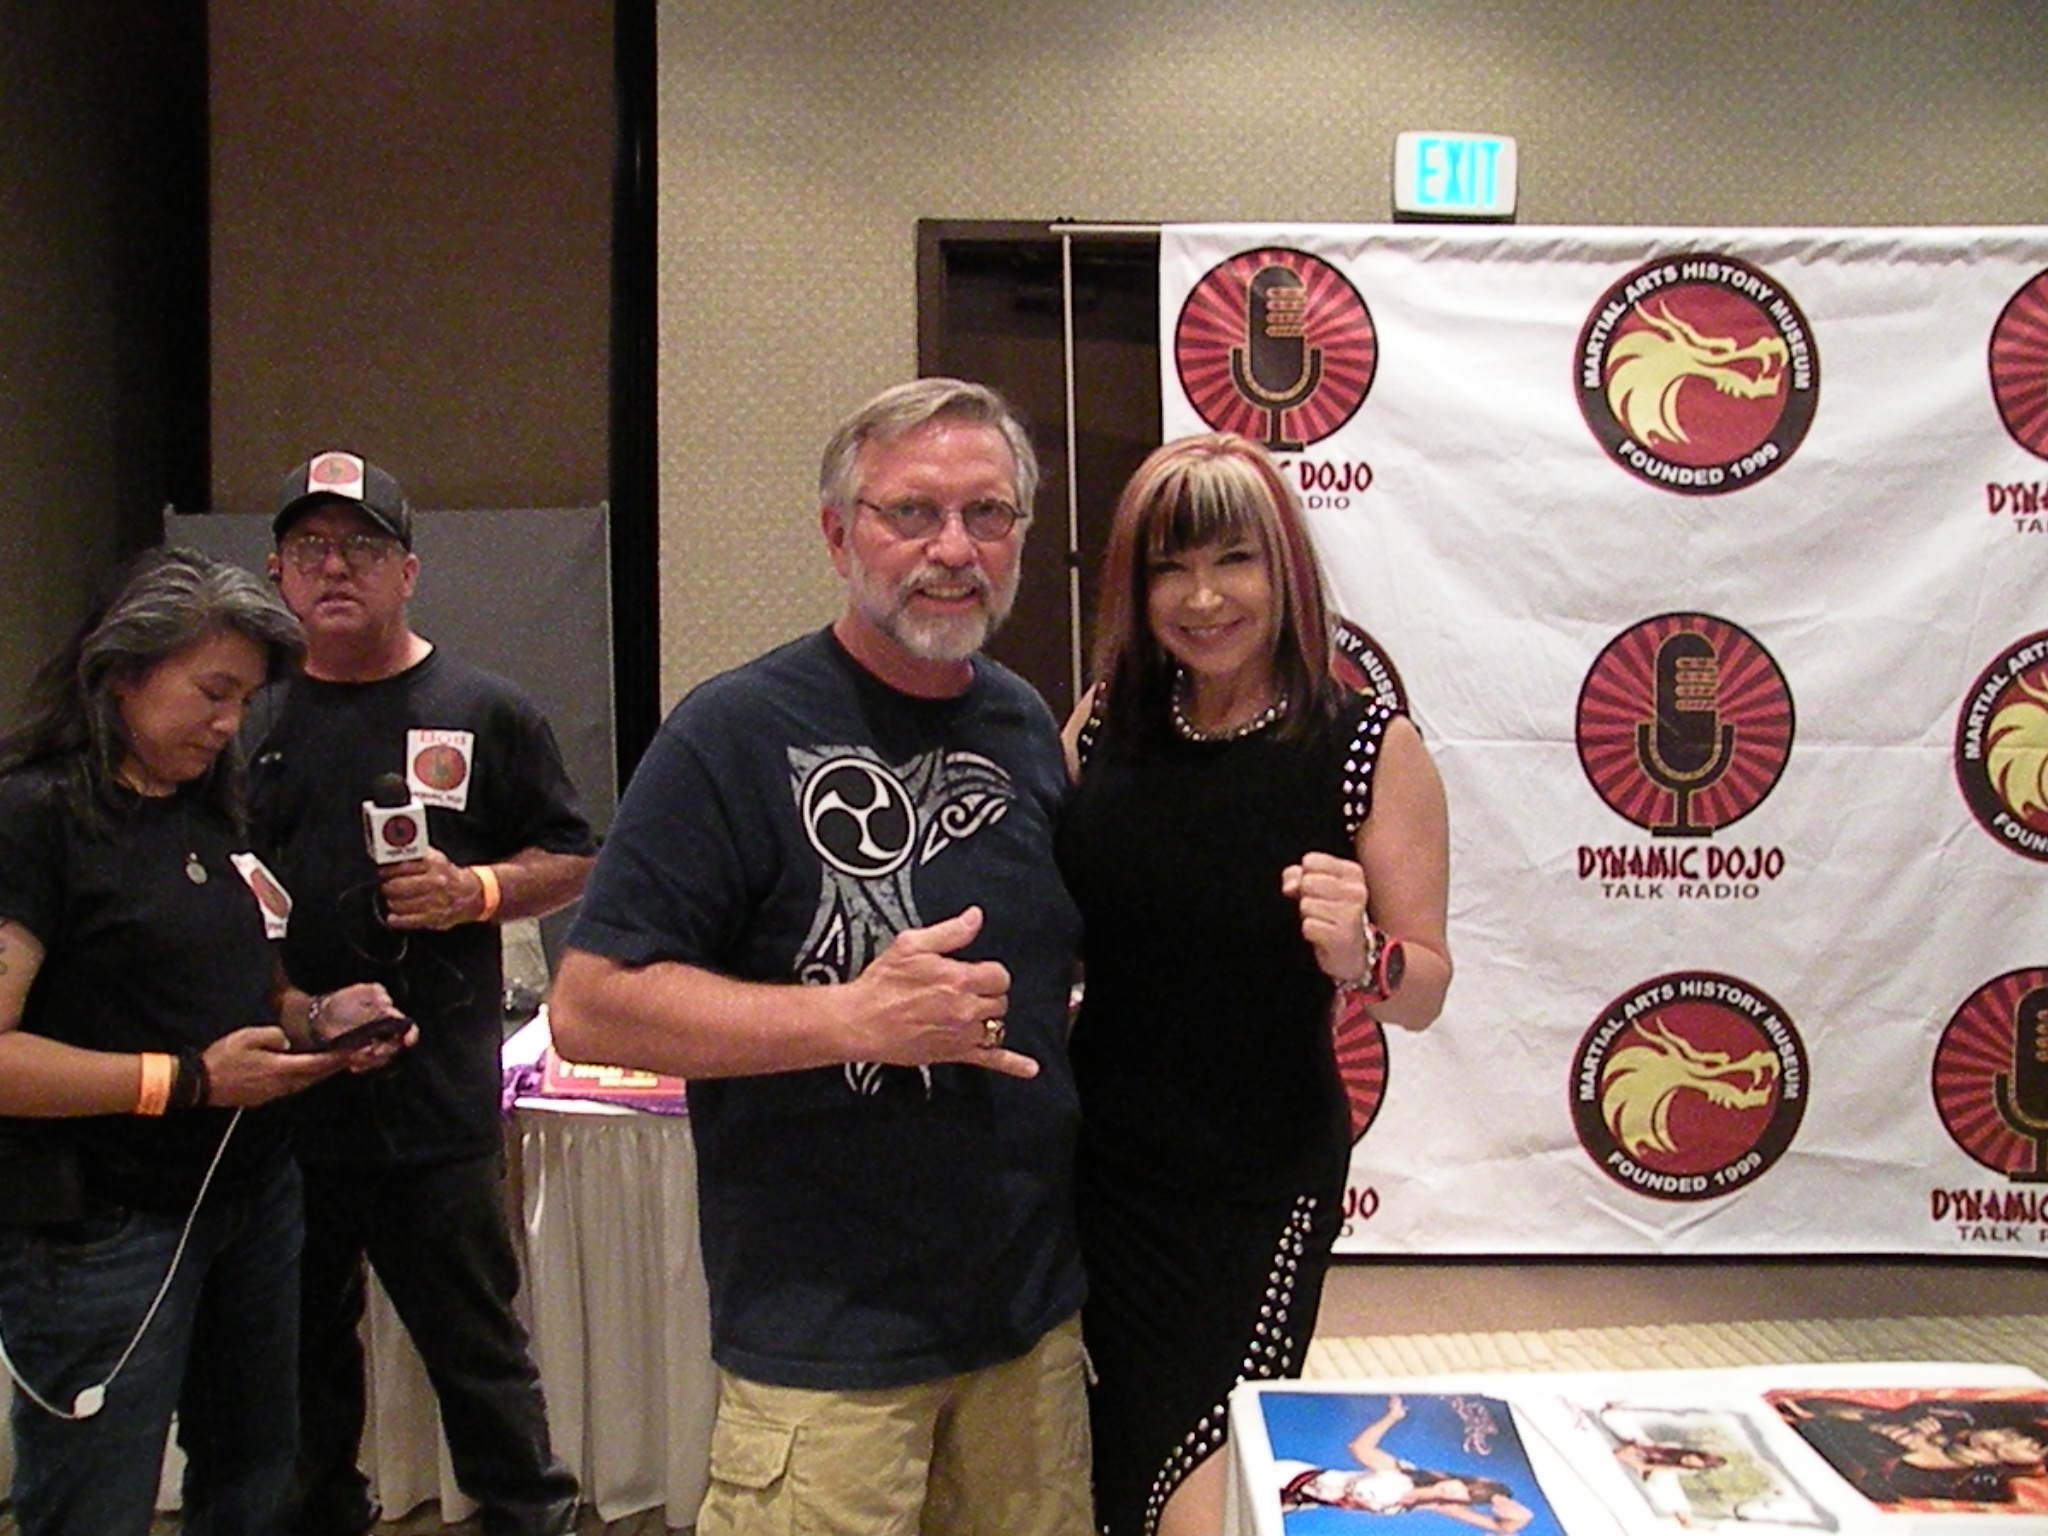 cynthia rothrock and koubushi gossett dragonfest LA 2016